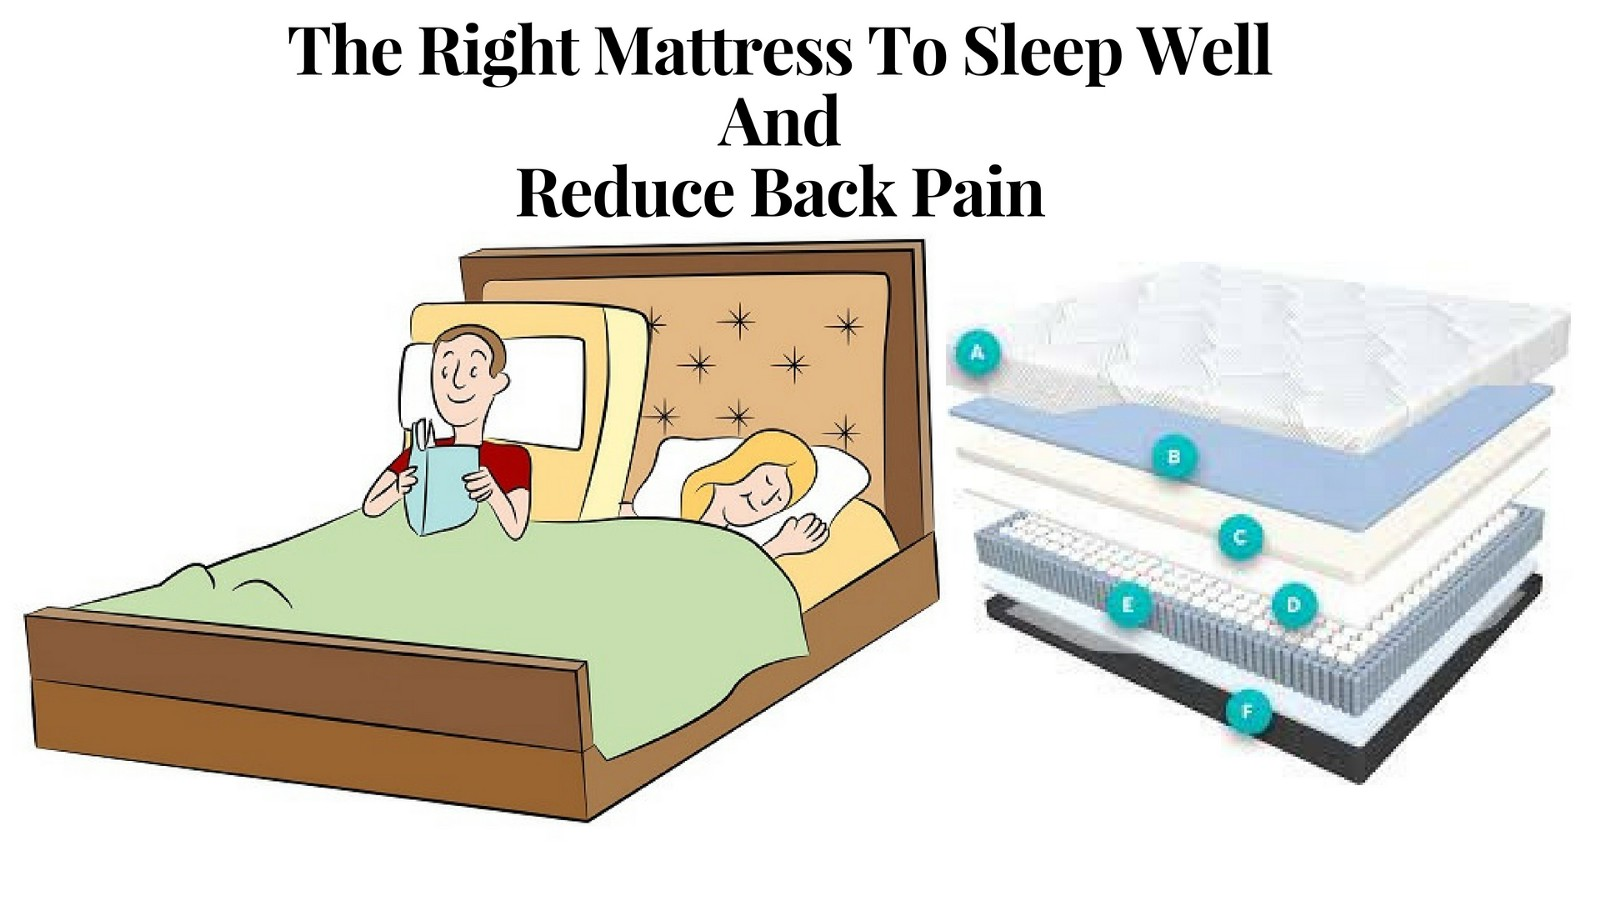 What Kind Of Mattress Is Good For Back Pain The Right Mattress To Sleep Well And Reduce Back Pain